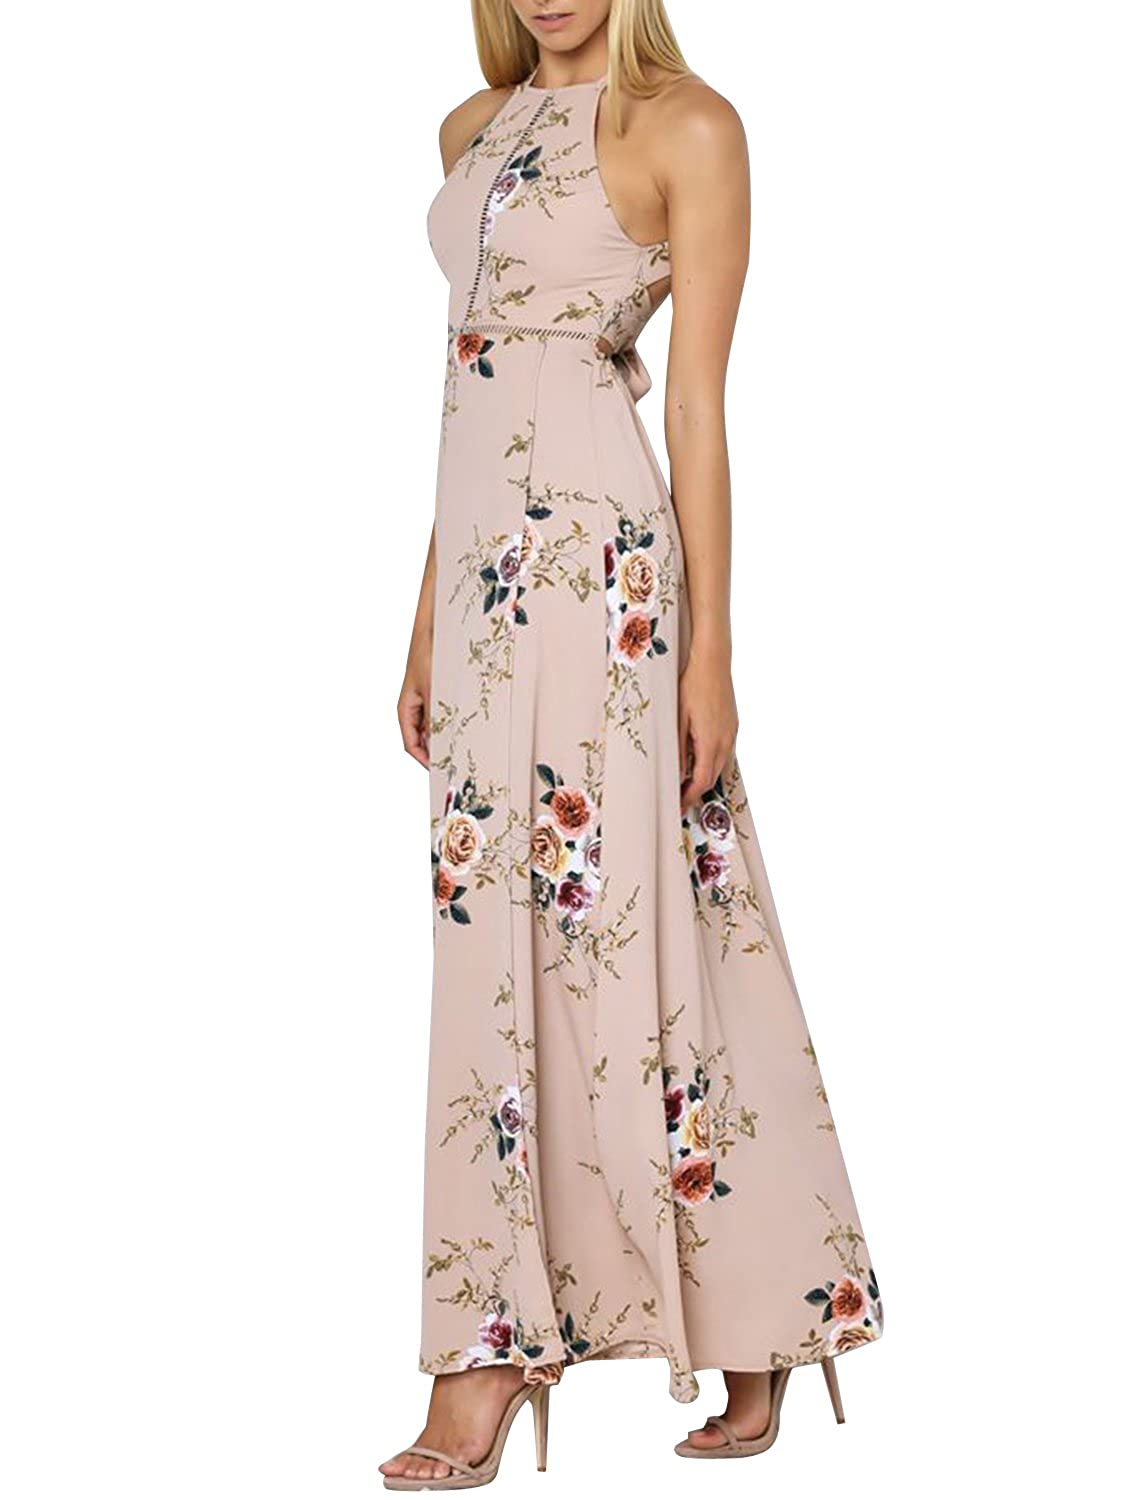 3ced5734c2b1 Made of soft chiffon and polyester blend fabric, light and wear  comfortable, please cold hand wash and lay flat to dry. Sexy backless  sleevedress maxi dress ...